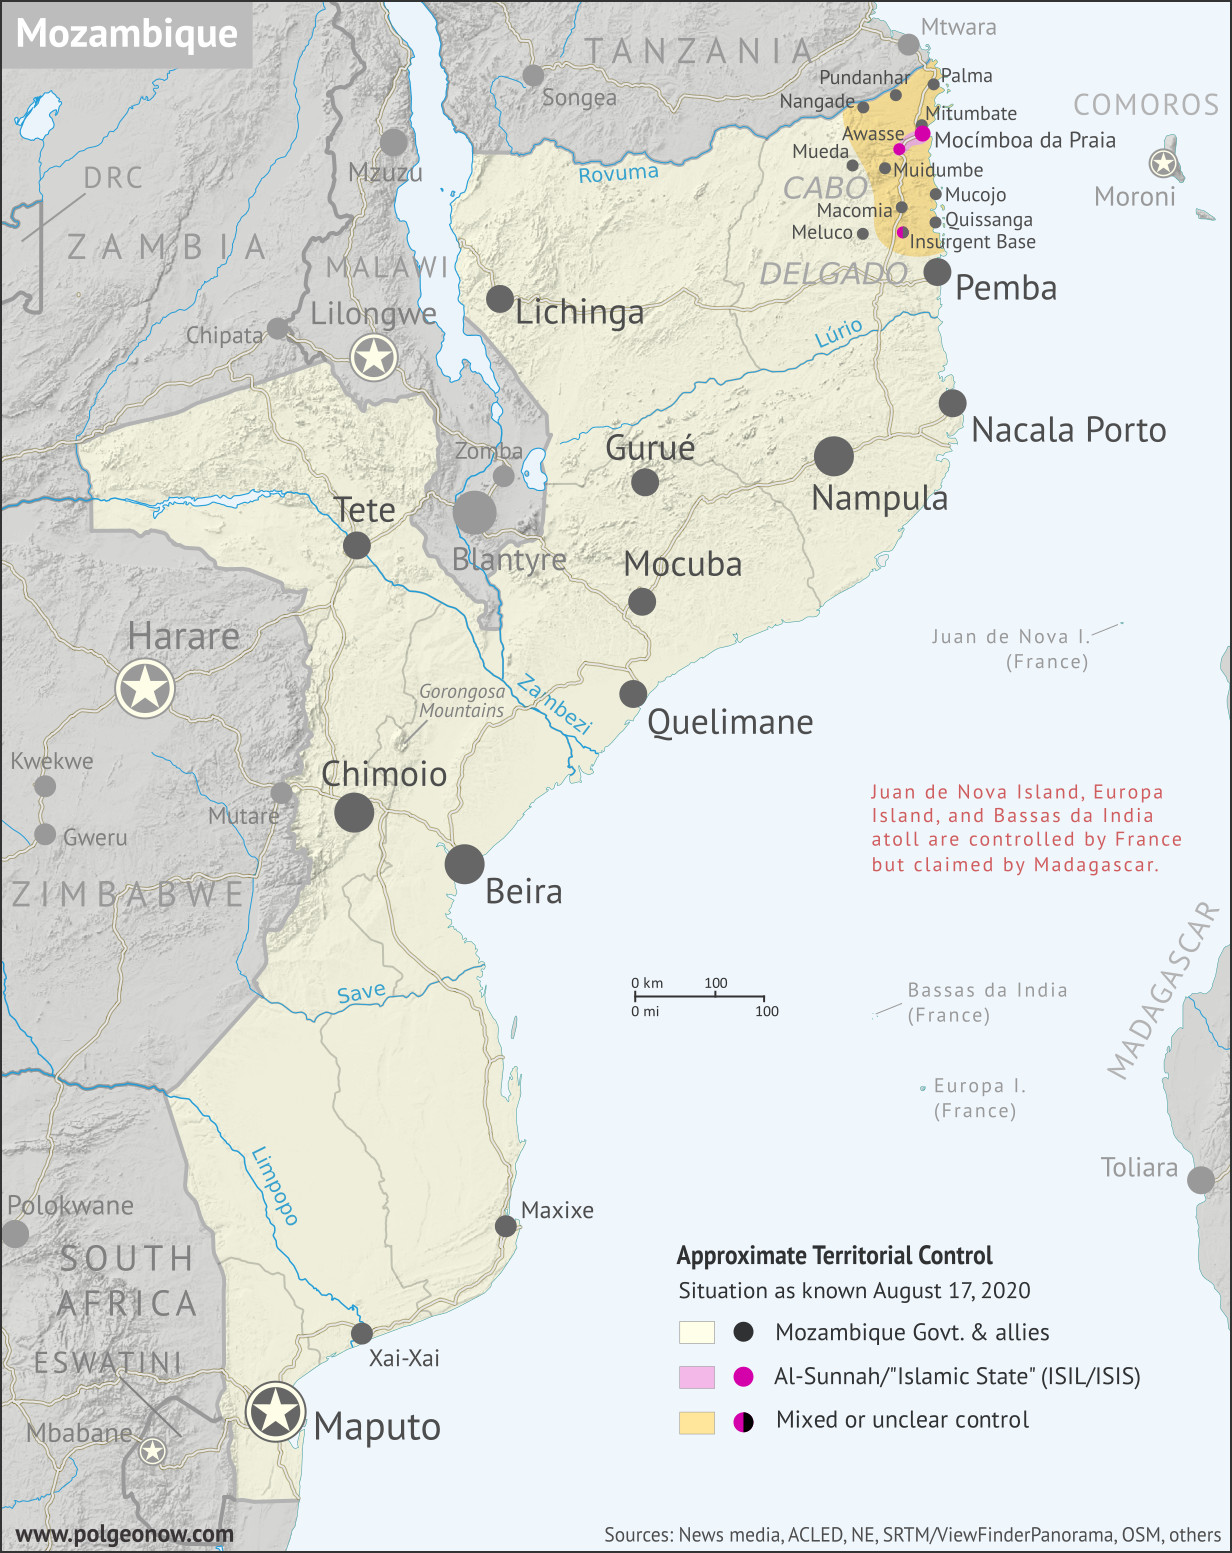 Mozambique Insurgency: Map of ISIS control in Mozambique, or of control by local insurgent group Ahlu Sunnah Wa-Jamâ / Ahlu Sunnah Wa-Jamaa / Ahlu Sunnah Wa-Jamaah (al-Sunna / al-Sunnah) in northern Mozambique's Cabo Delgado province, with territorial control, roads, rivers, and terrain. Includes key locations of the insurgency such as Mocímboa da Praia, Awasse, Macomia, Mucojo, Quissanga, Meluco, Muidumbe, Mueda, Mitumbate (Mutumbate), Palma, Pundanhar, and Nangade, as well as other important cities such as Pemba, Nampula, and Maputo. Neighboring countries shown, including Comoros, Madagascar, and French territories of Juan de Nova Island, Bassas da India, and Europa Island. Updated to August 17, 2020. Colorblind accessible.